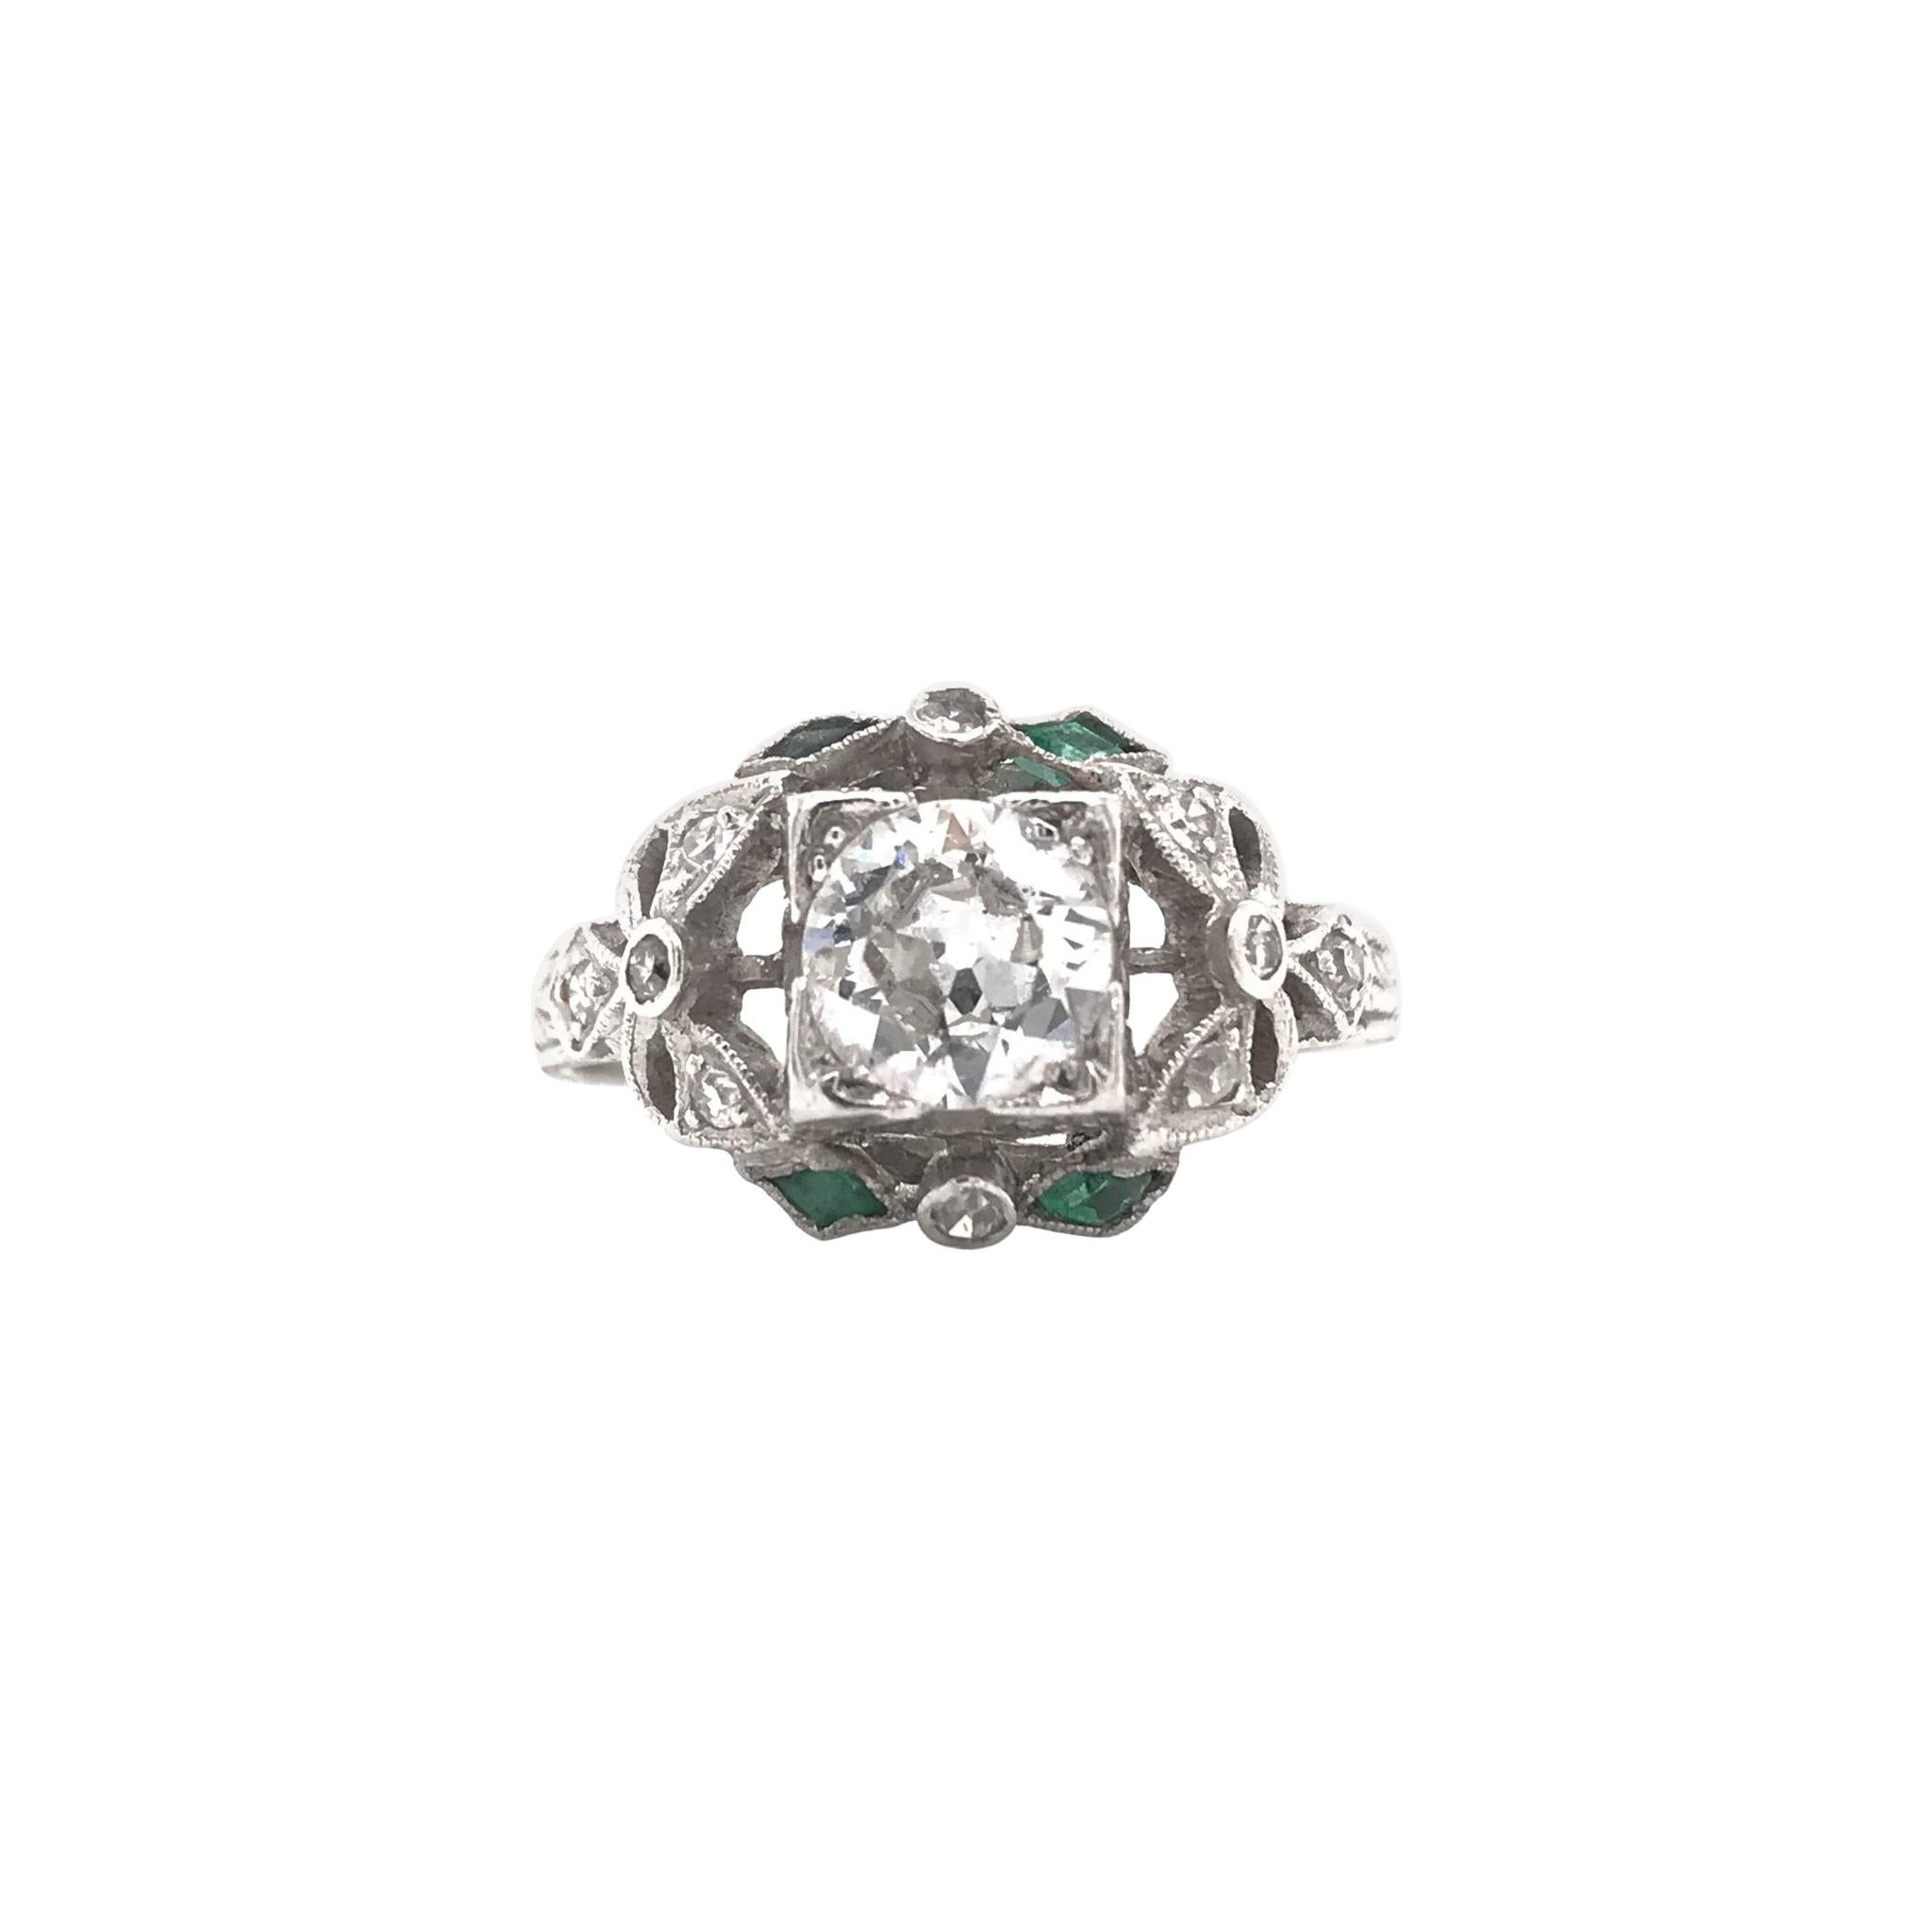 Edwardian Era 0.90 Carat Platinum Diamond & Emerald Ring